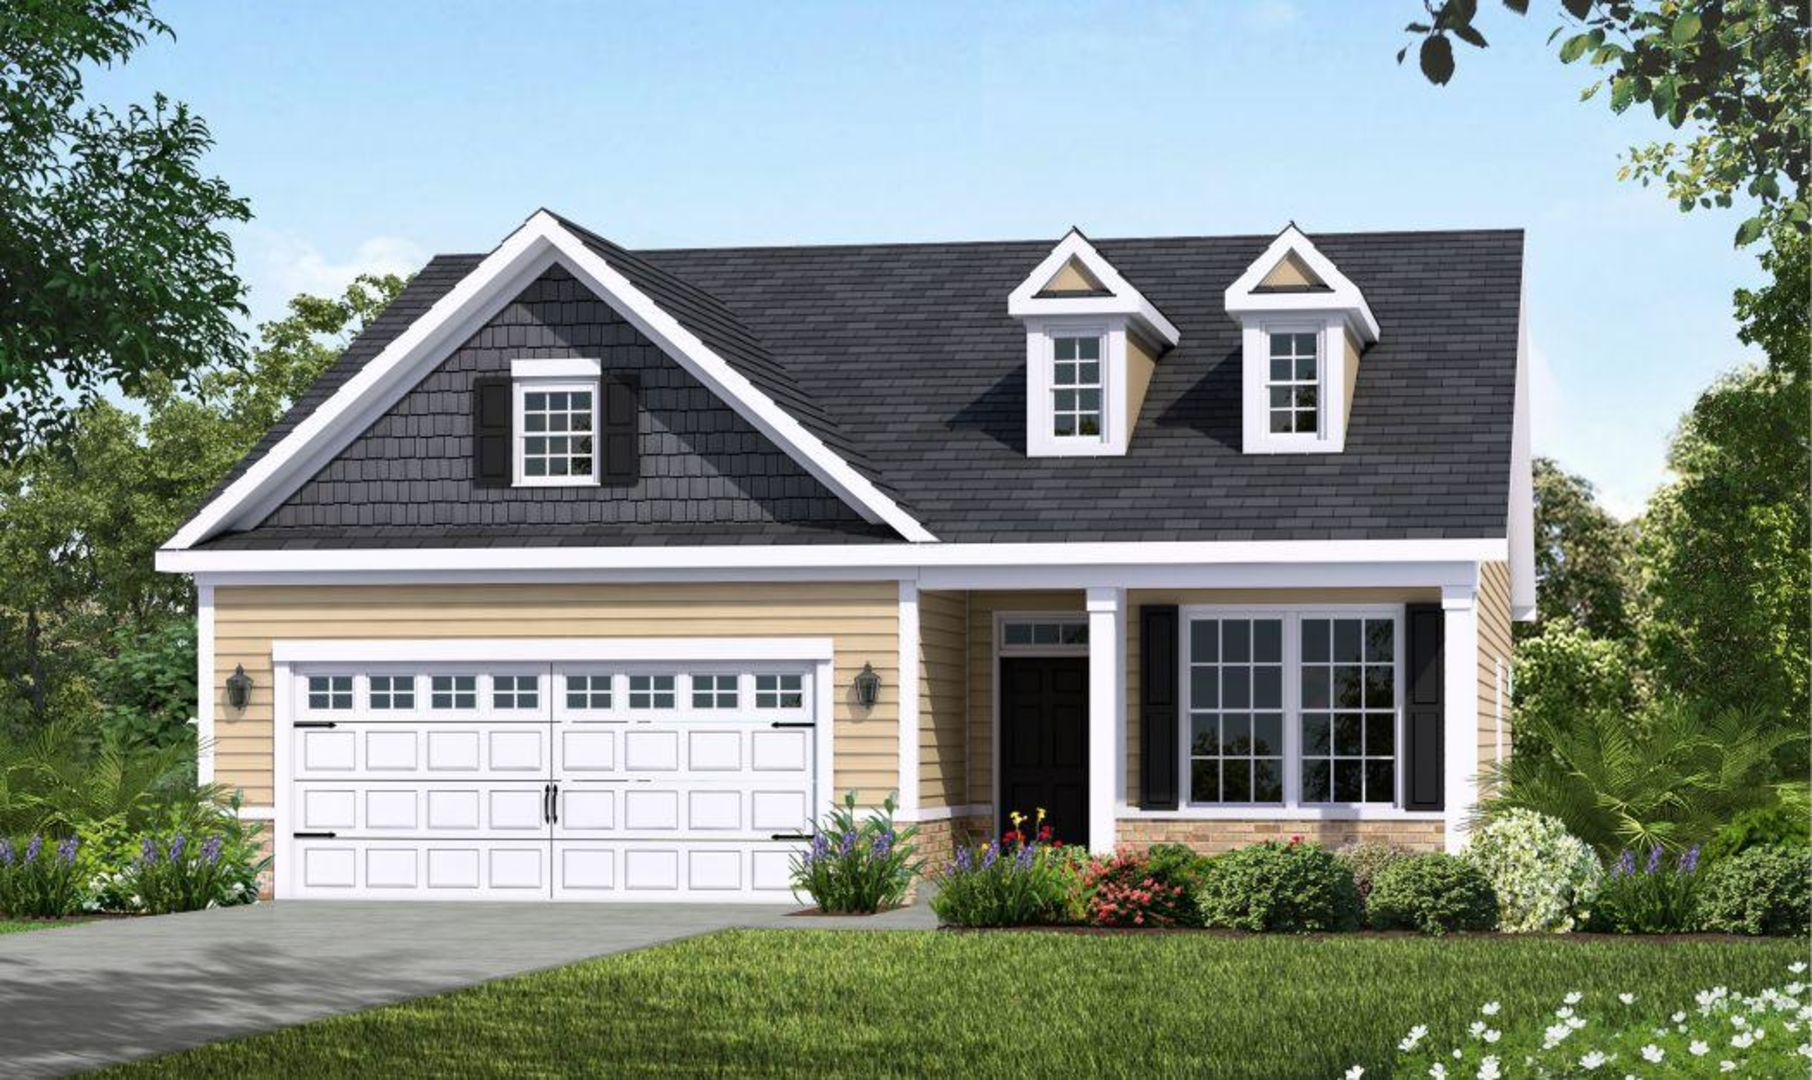 New construction floor plans in charleston sc newhomesource for House plans sc